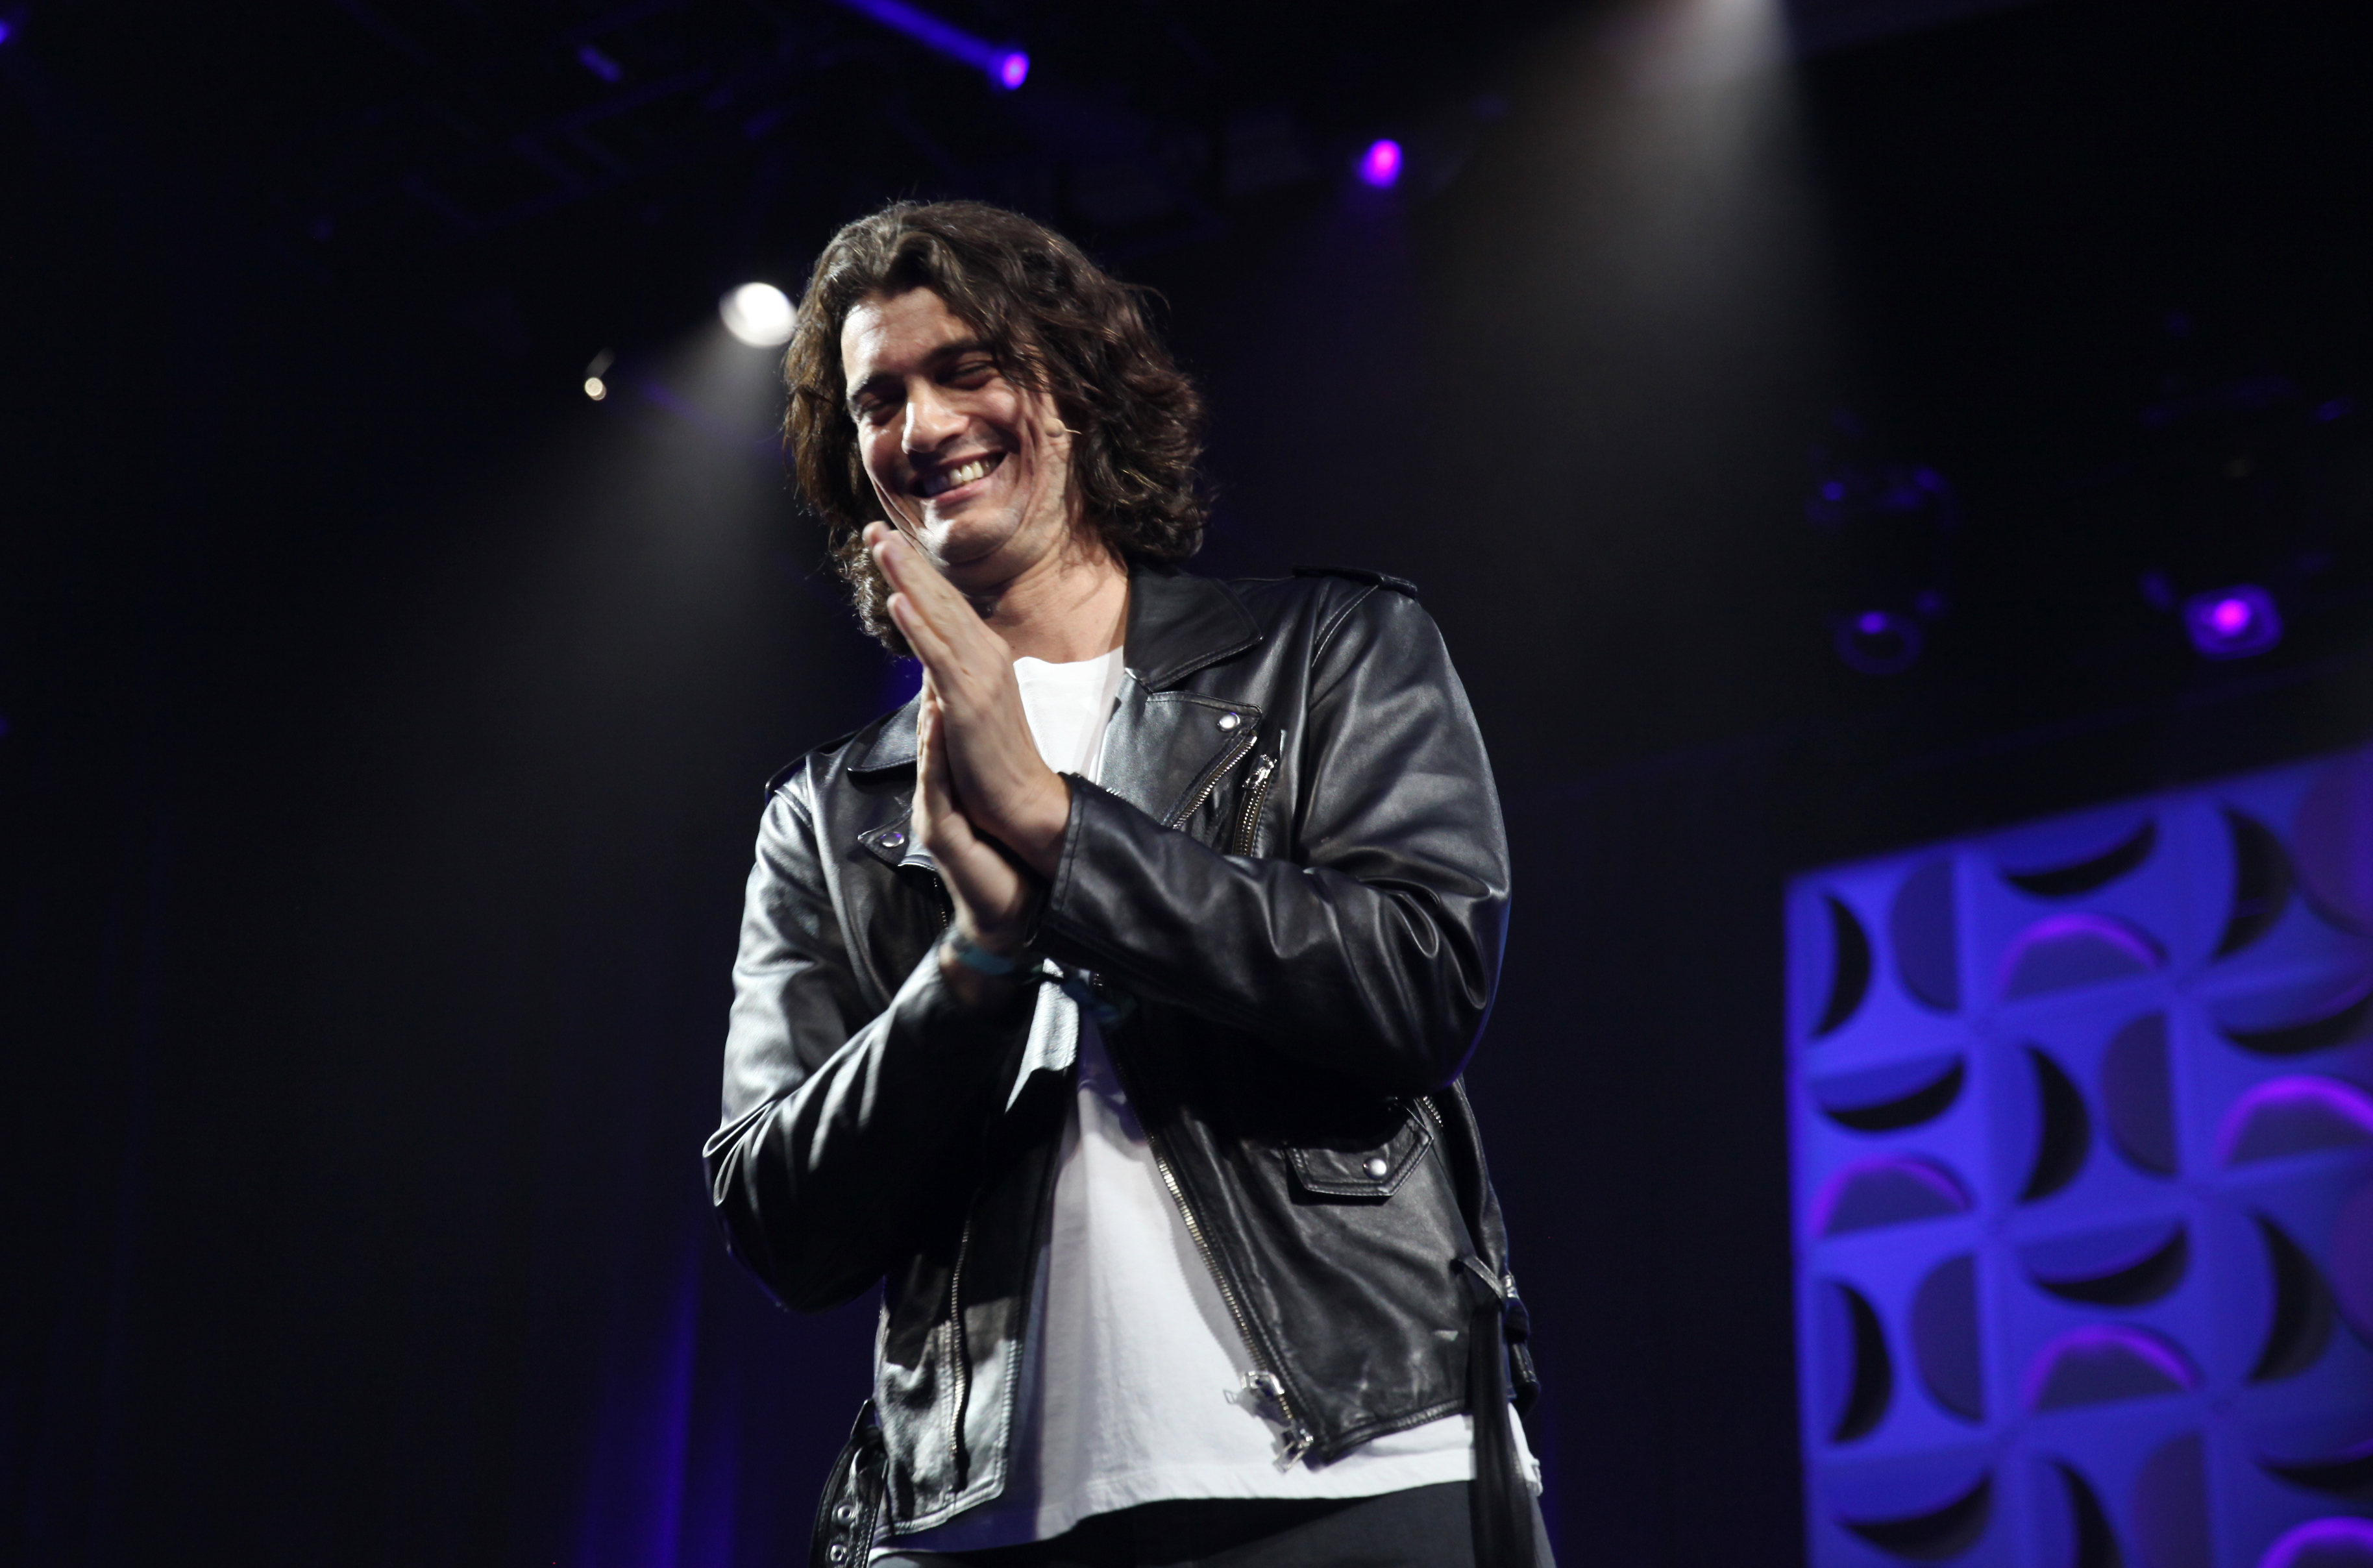 WeWork's ex-CEO Adam Neumann clasps his hands and smiles at the audience from onstage.